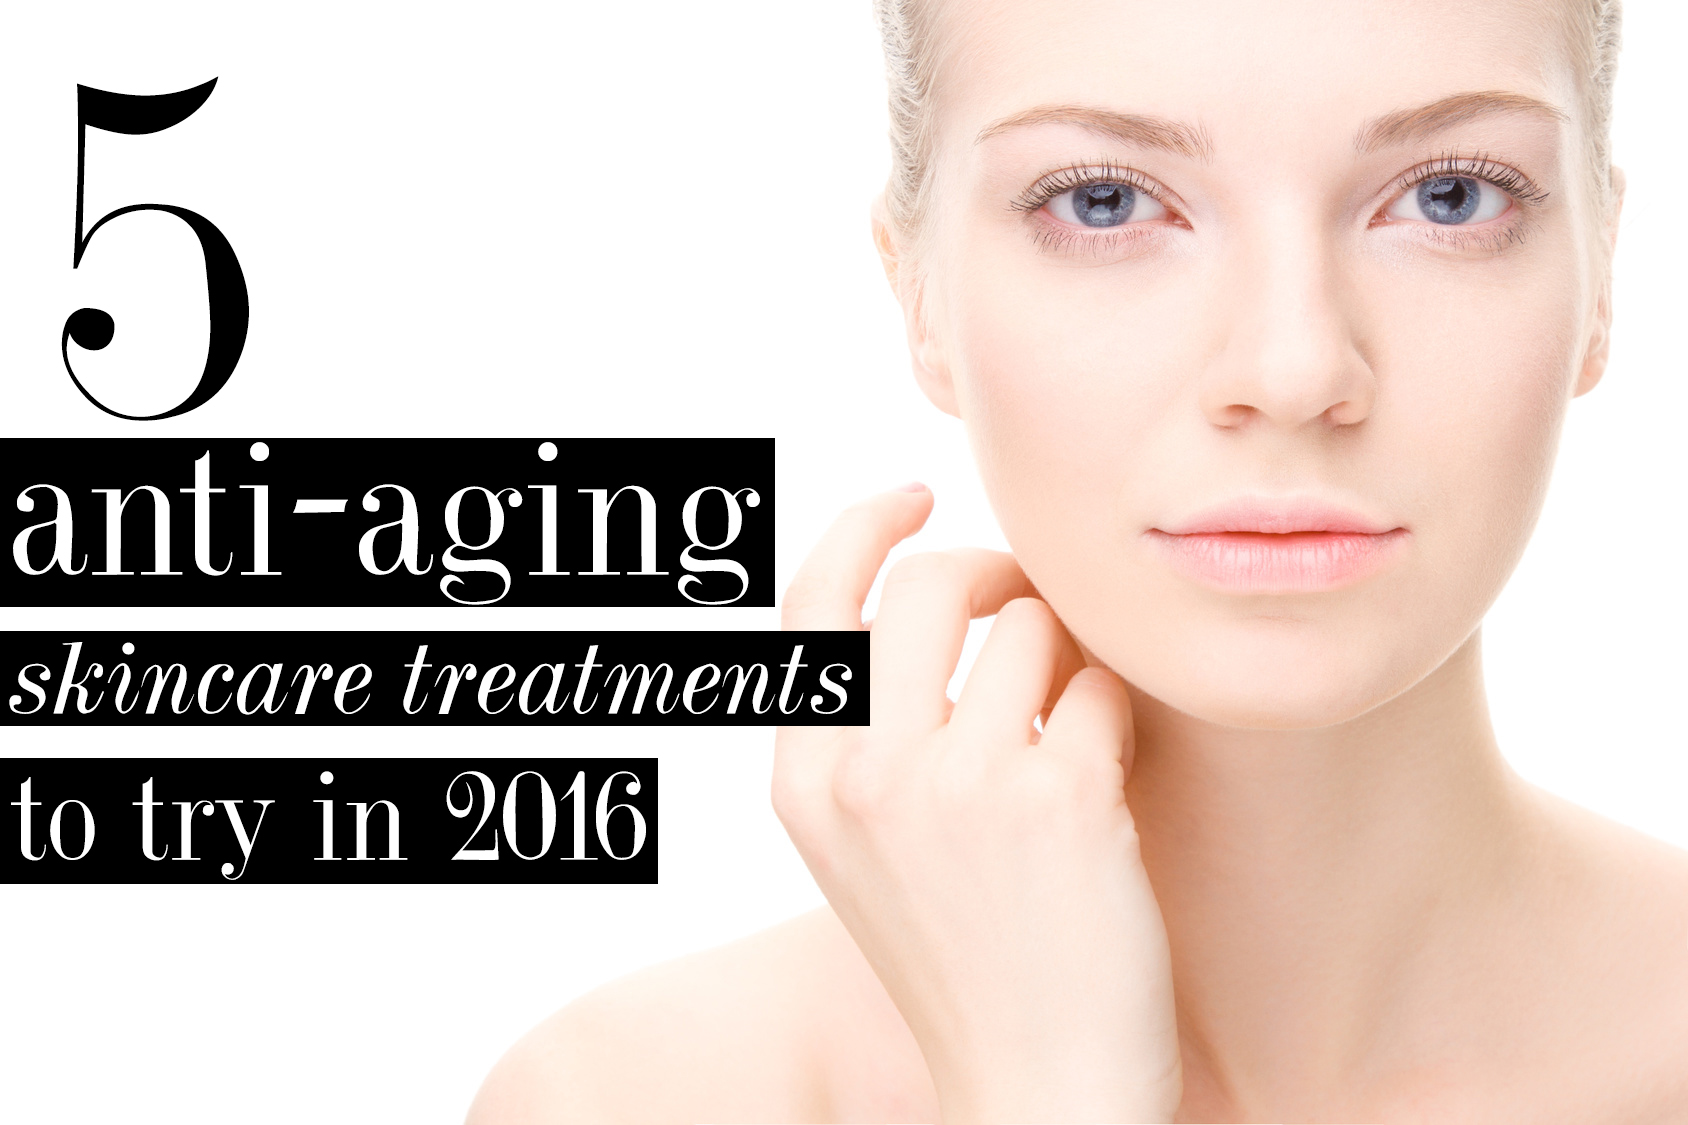 anti-aging skincare treatments to try in 2016